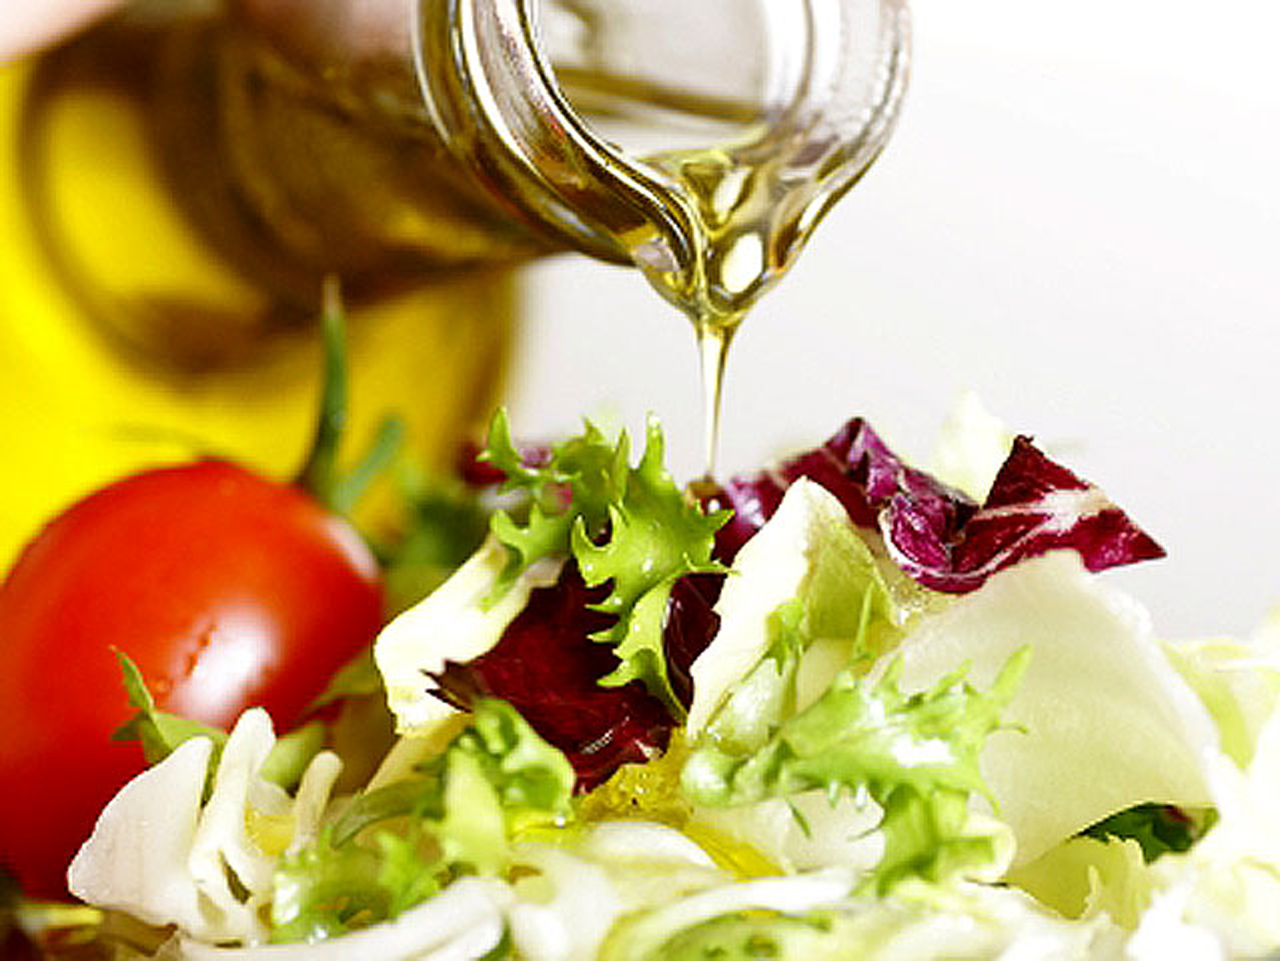 Mediterranean diet may be better for your heart than cutting down on